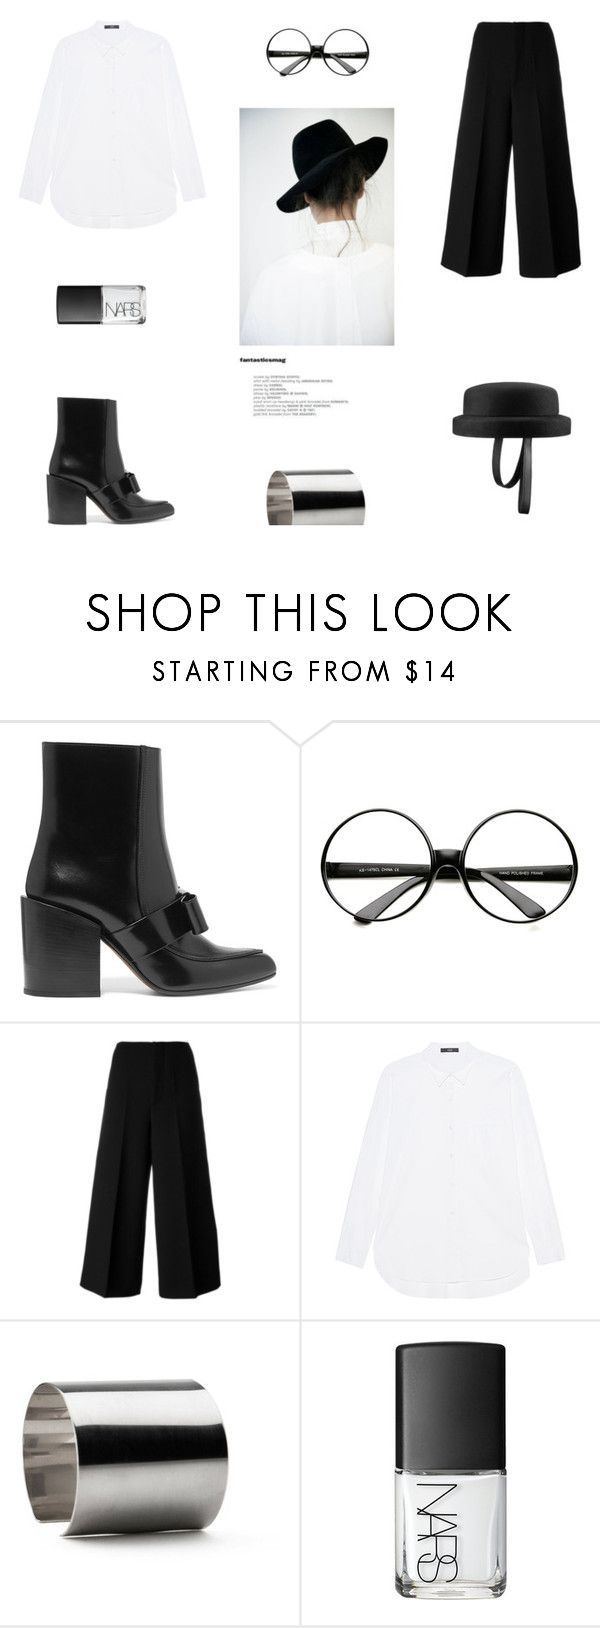 """""""THURSDAY"""" by canvas-moods ❤ liked on Polyvore featuring Chanel, Marni, ZeroUV, Steffen Schraut, Maria Dorai Raj, NARS Cosmetics and contemporary"""